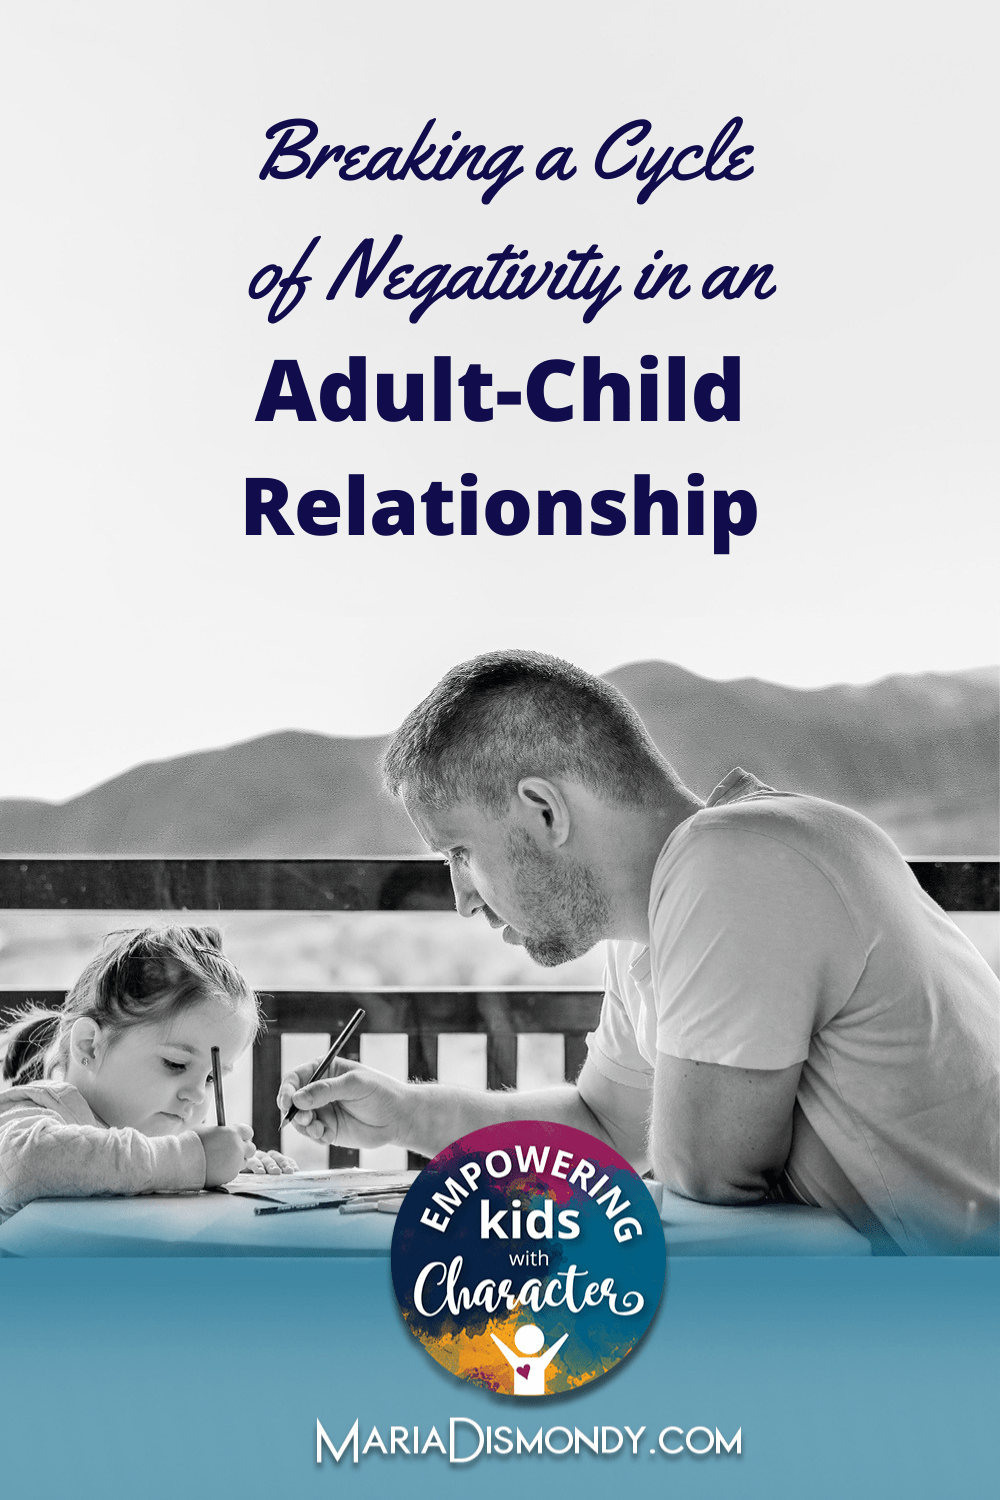 Breaking a Cycle of Negativity in an Adult-Child Relationship